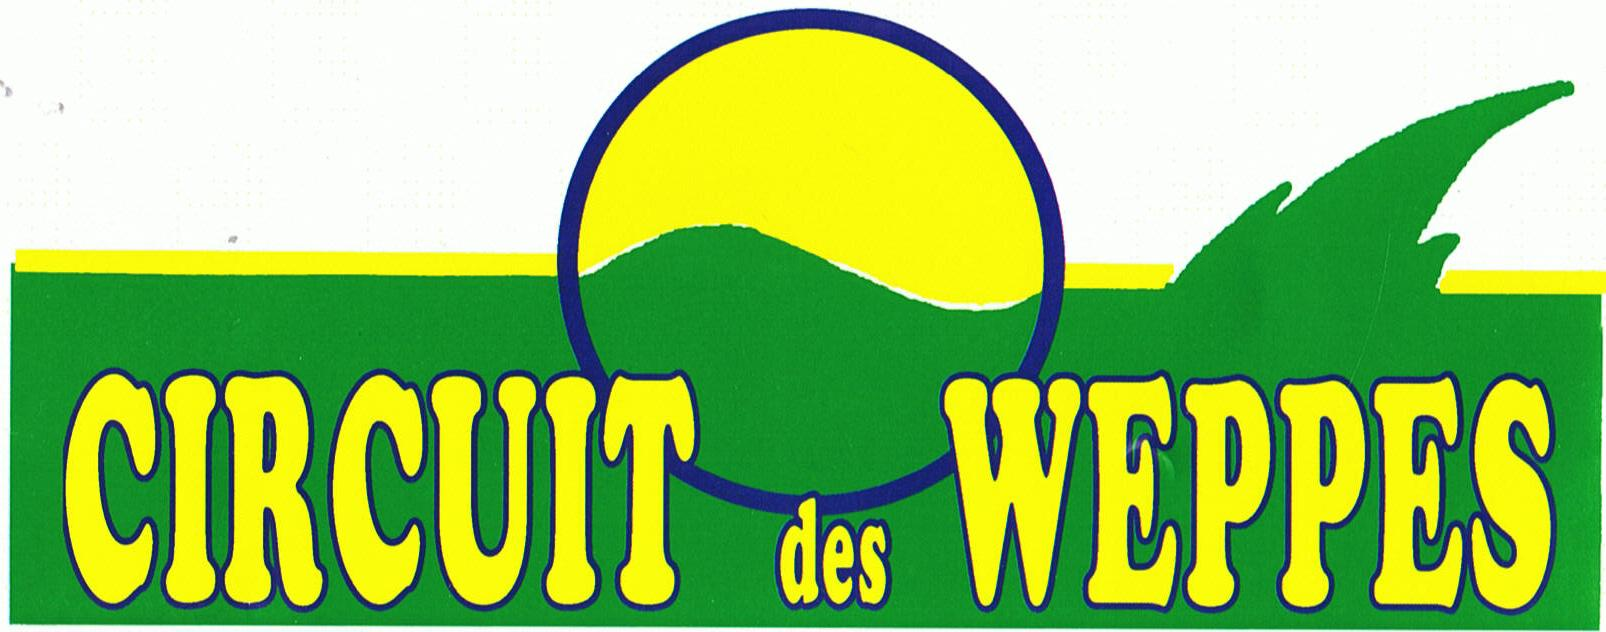 CIRCUIT DES WEPPES